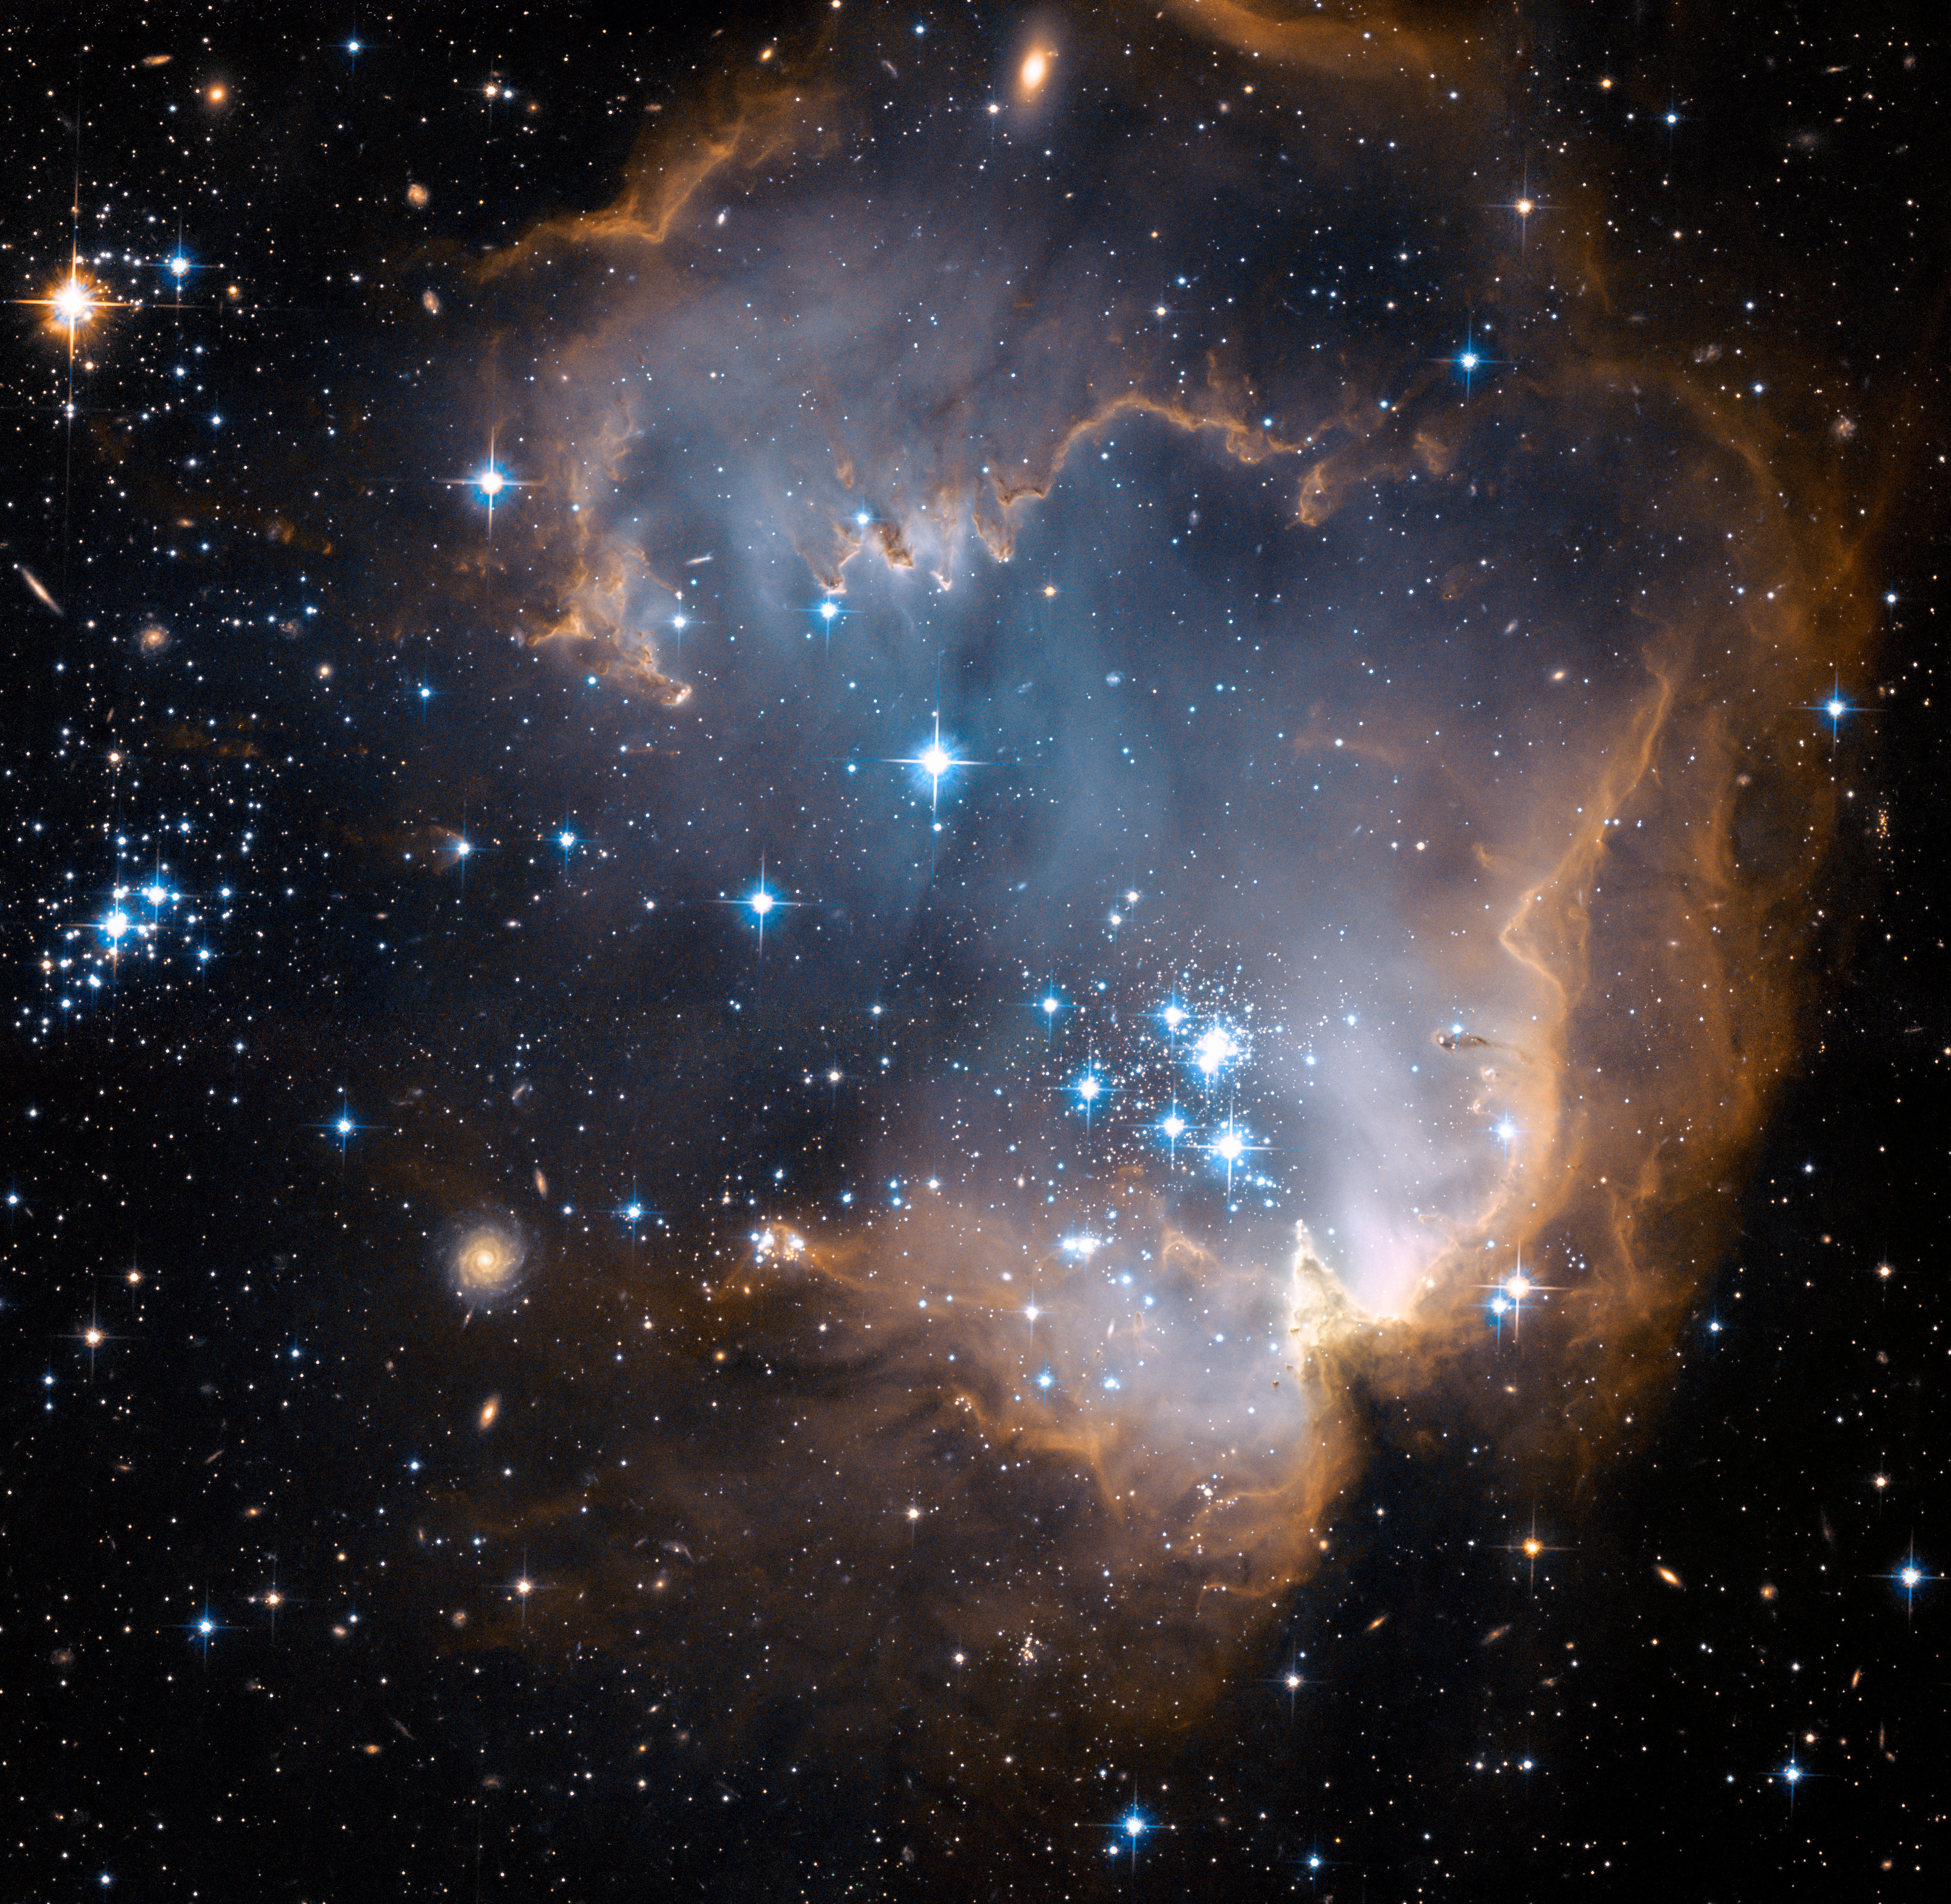 HUBBLE'S TOP 100 • #9 • Credit: NASA, ESA and the Hubble Heritage Team STScI/AURA)-ESA/Hubble Collaboration